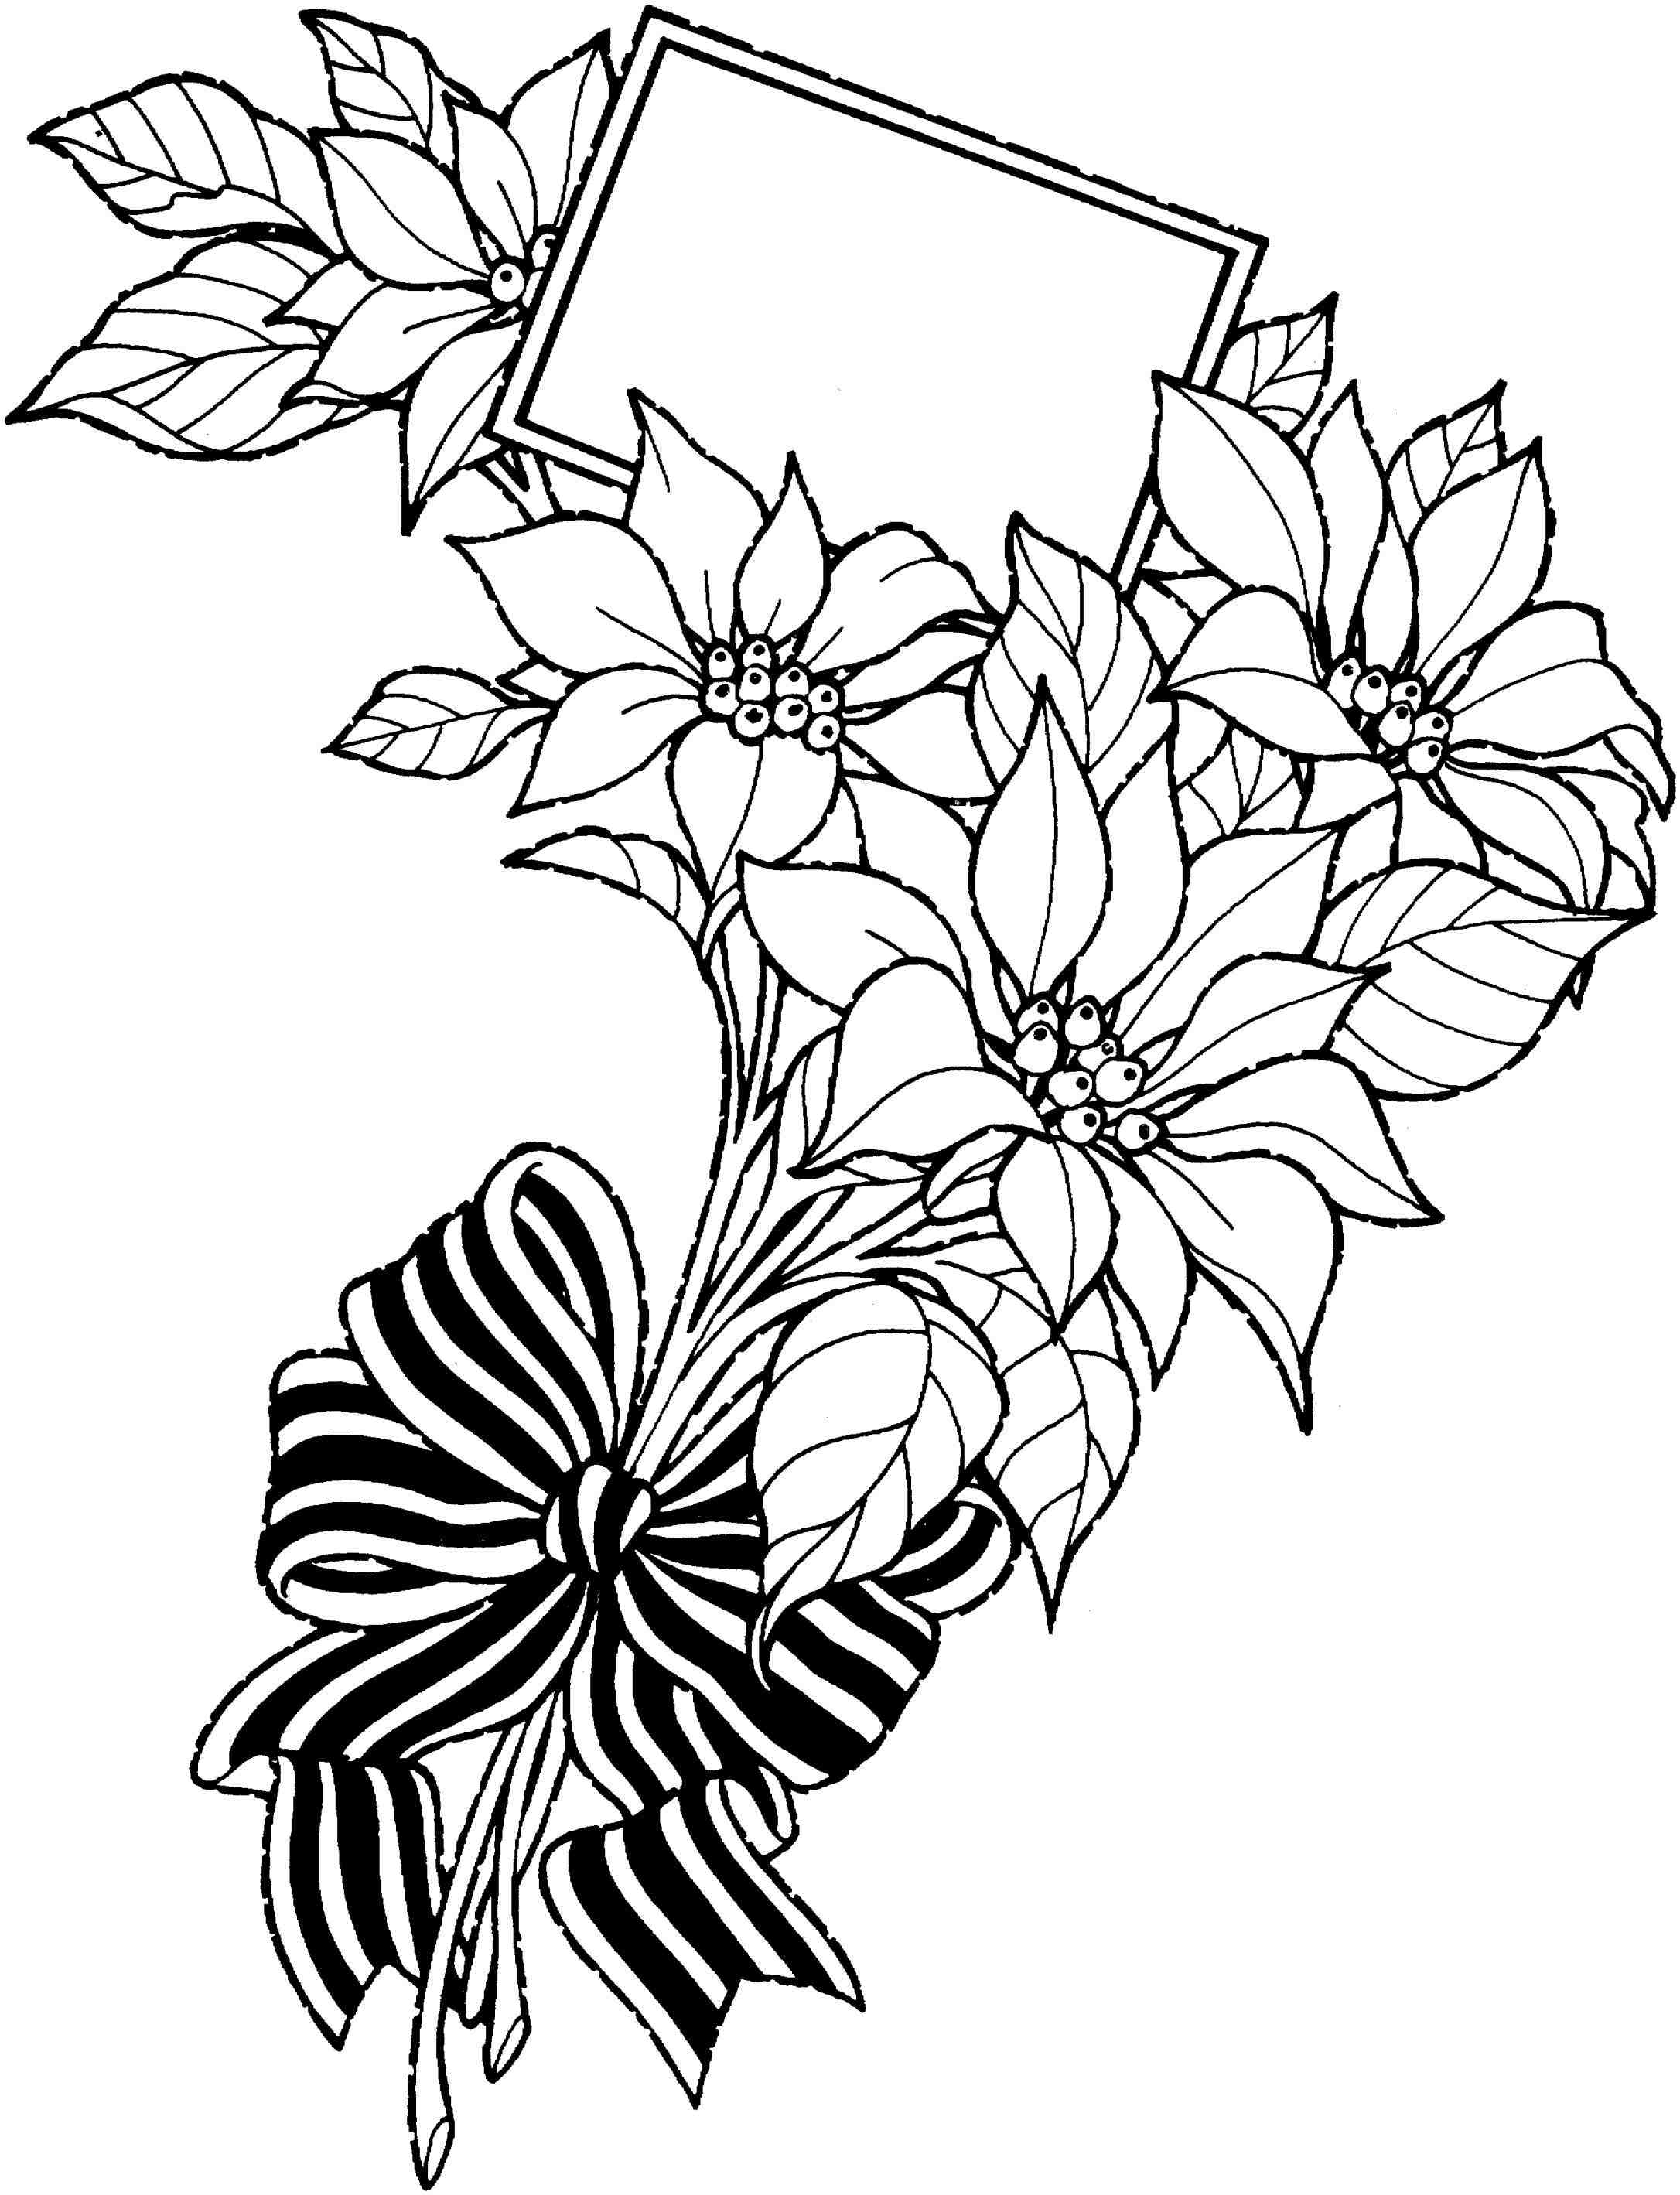 2172x2838 How To Draw A Hawaiian Flower Step By Step For Kids